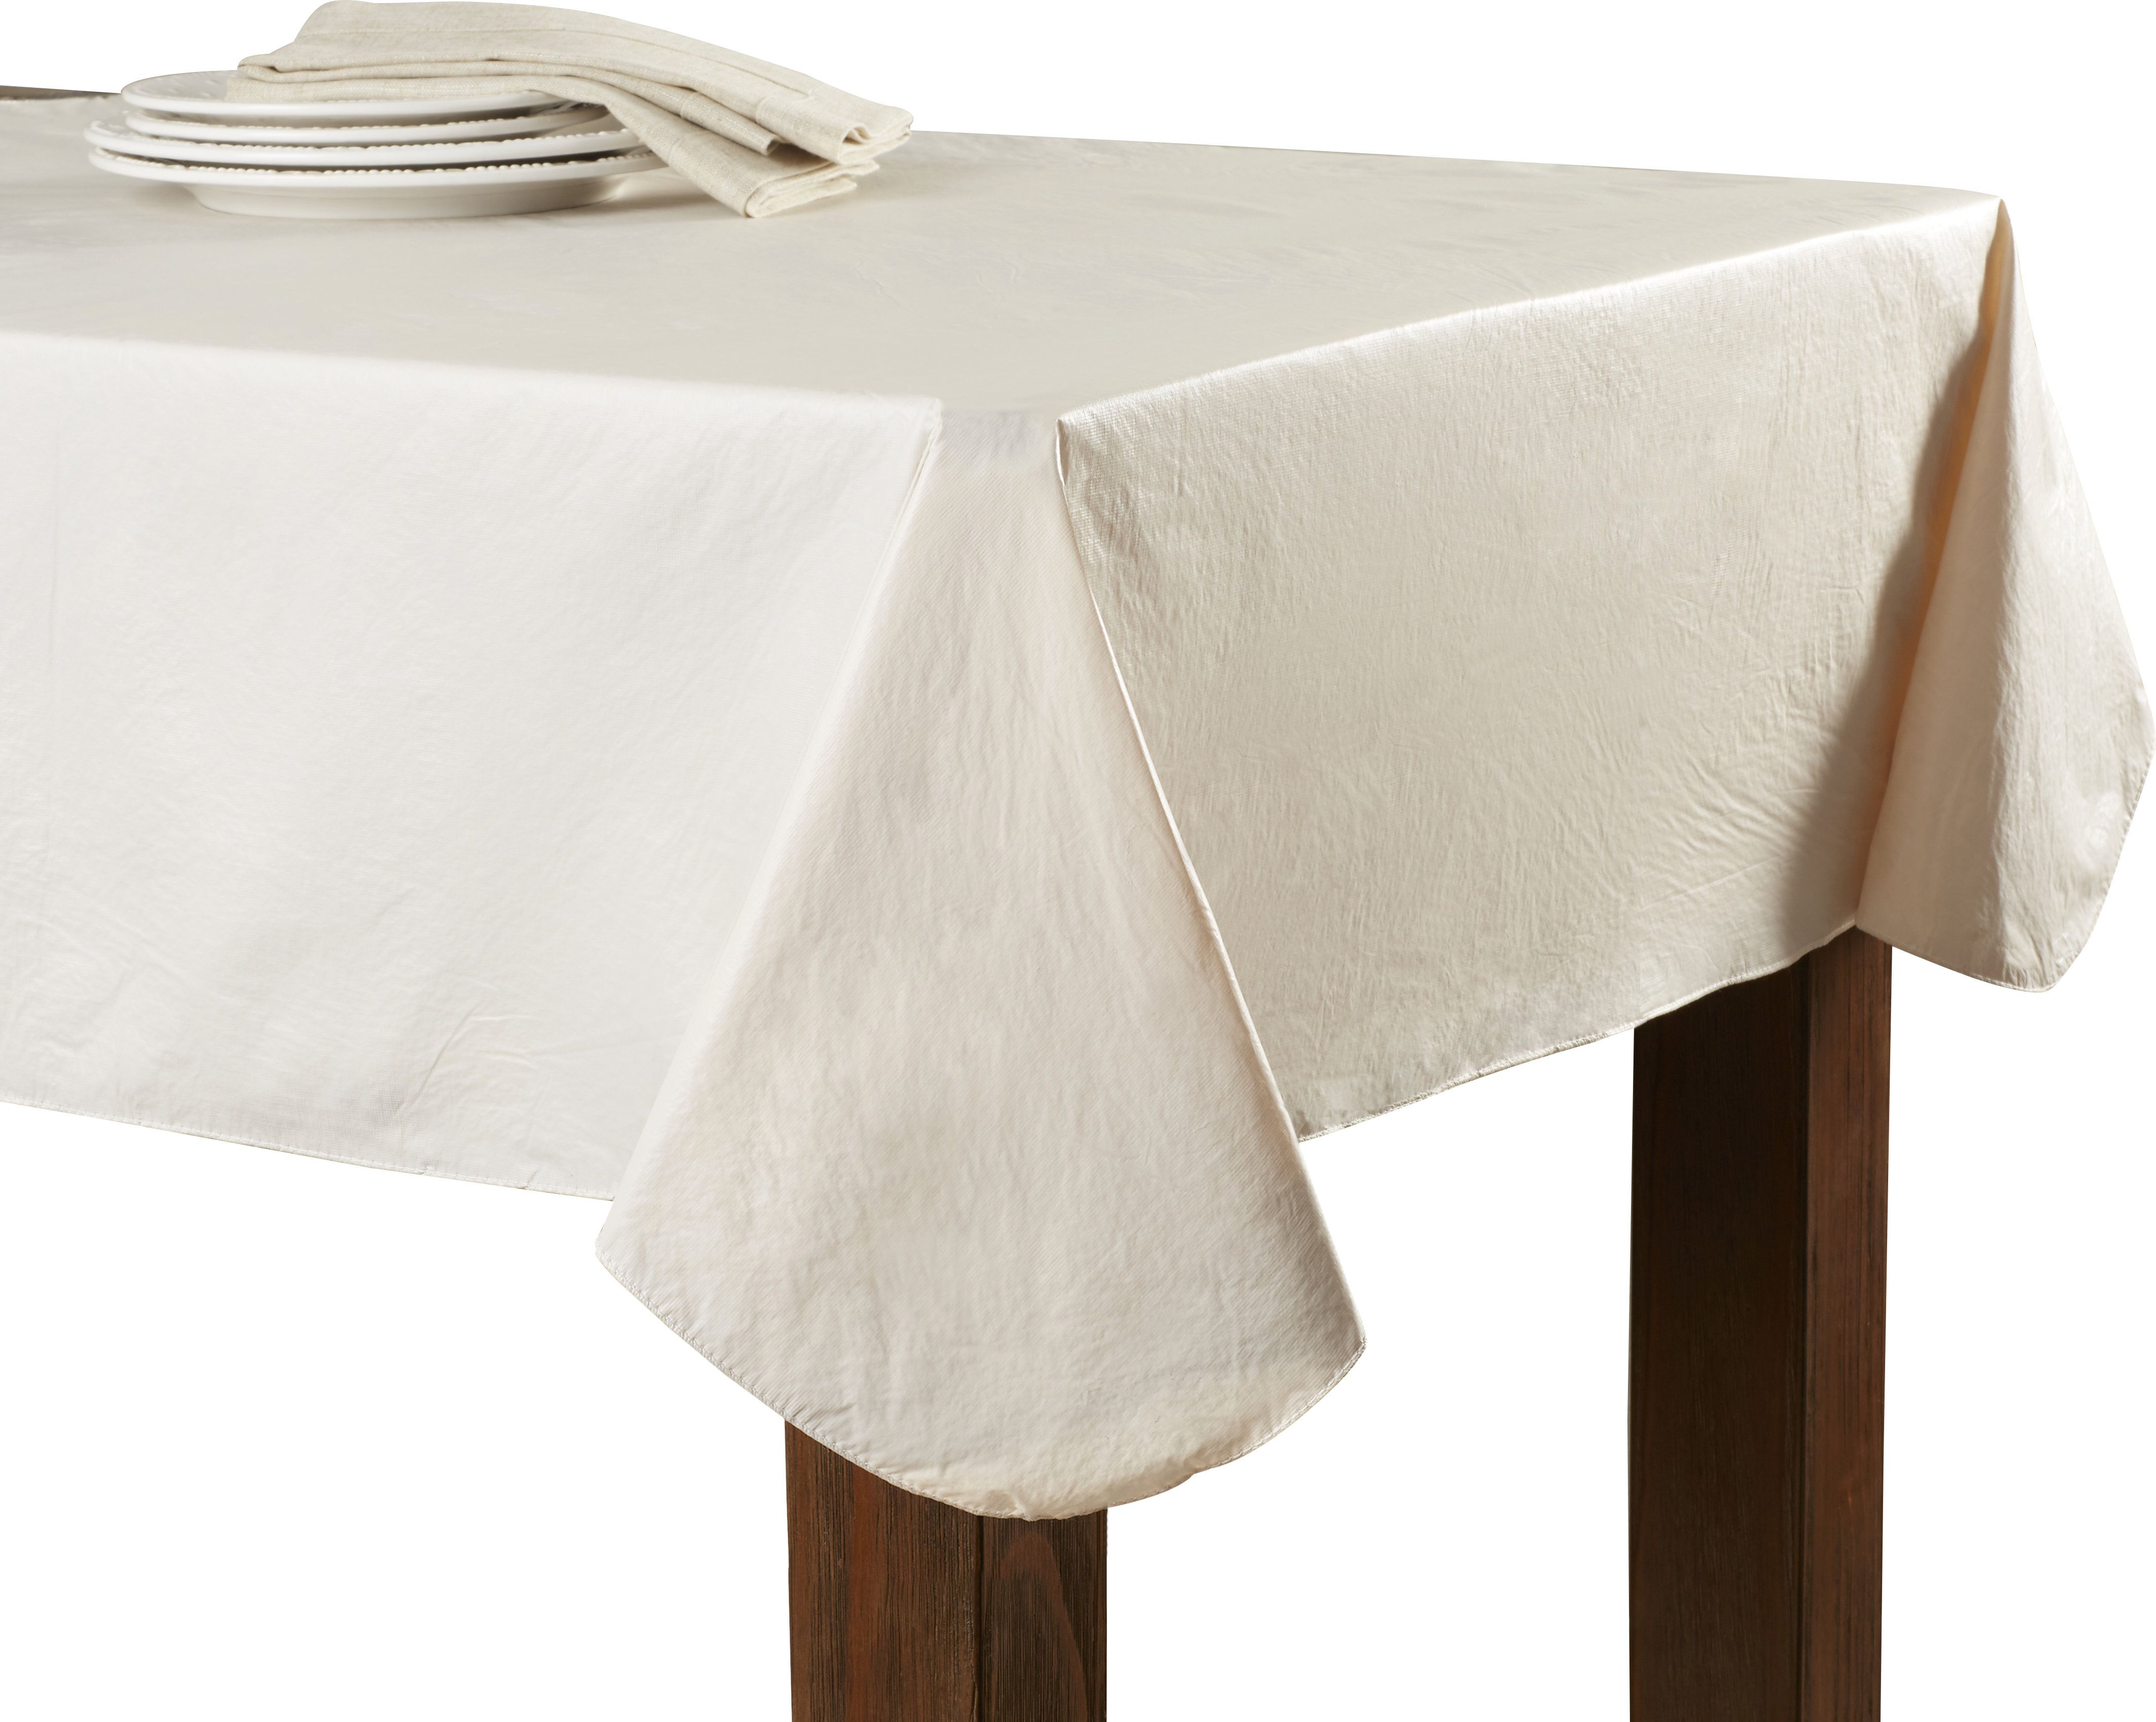 symple stuff vinyl flannel backed tablecloth reviews accent your focus table runner pattern big lots tables small outdoor coffee white marble square real wood furniture half moon